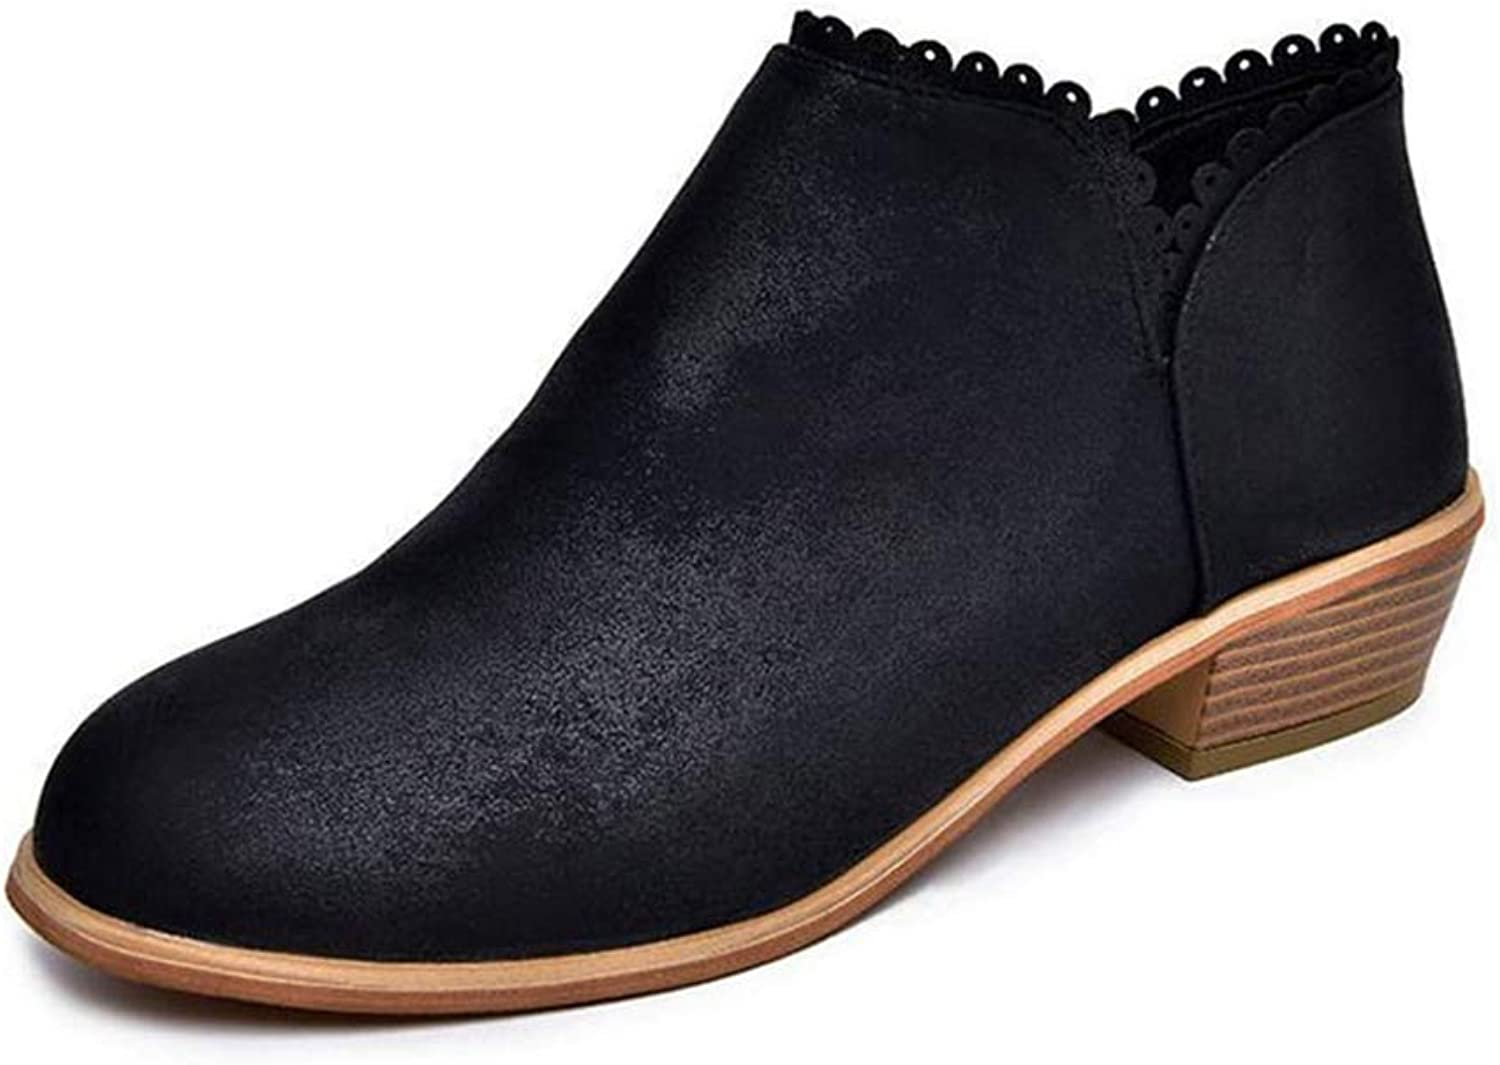 Zarbrina Womens Low Square Heel Ankle Boots Ladies Fashion Round Toe Casual Soft Rubber Sole Slip On Synthetic Winter Warm Party Dress shoes